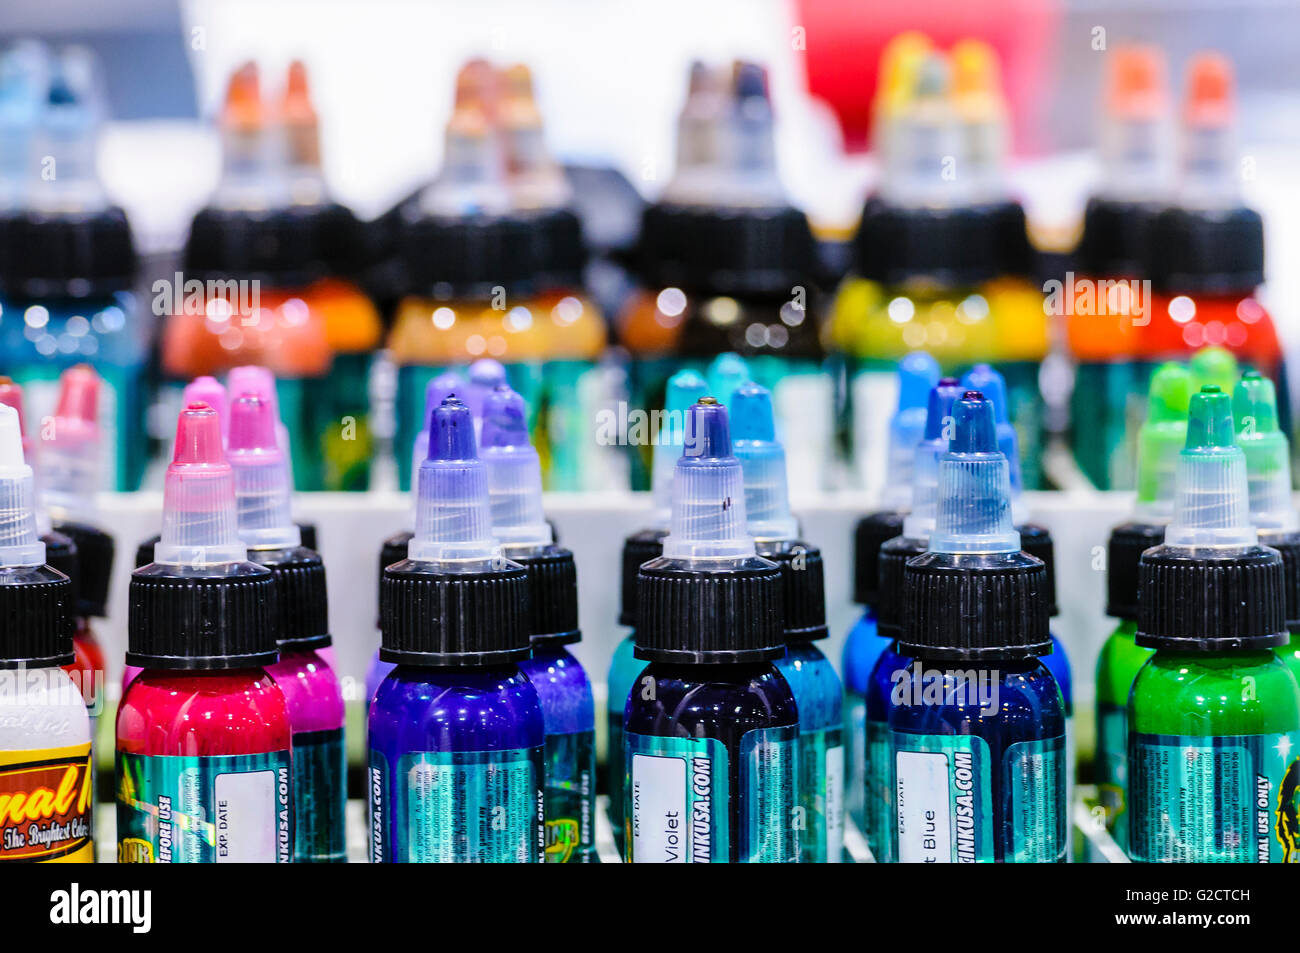 BELFAST, NORTHERN IRELAND. 28 MAY 2016 - 6th Northern Ireland Tattoo Conference. Bottles of tattoo ink on a shelf. Stock Photo